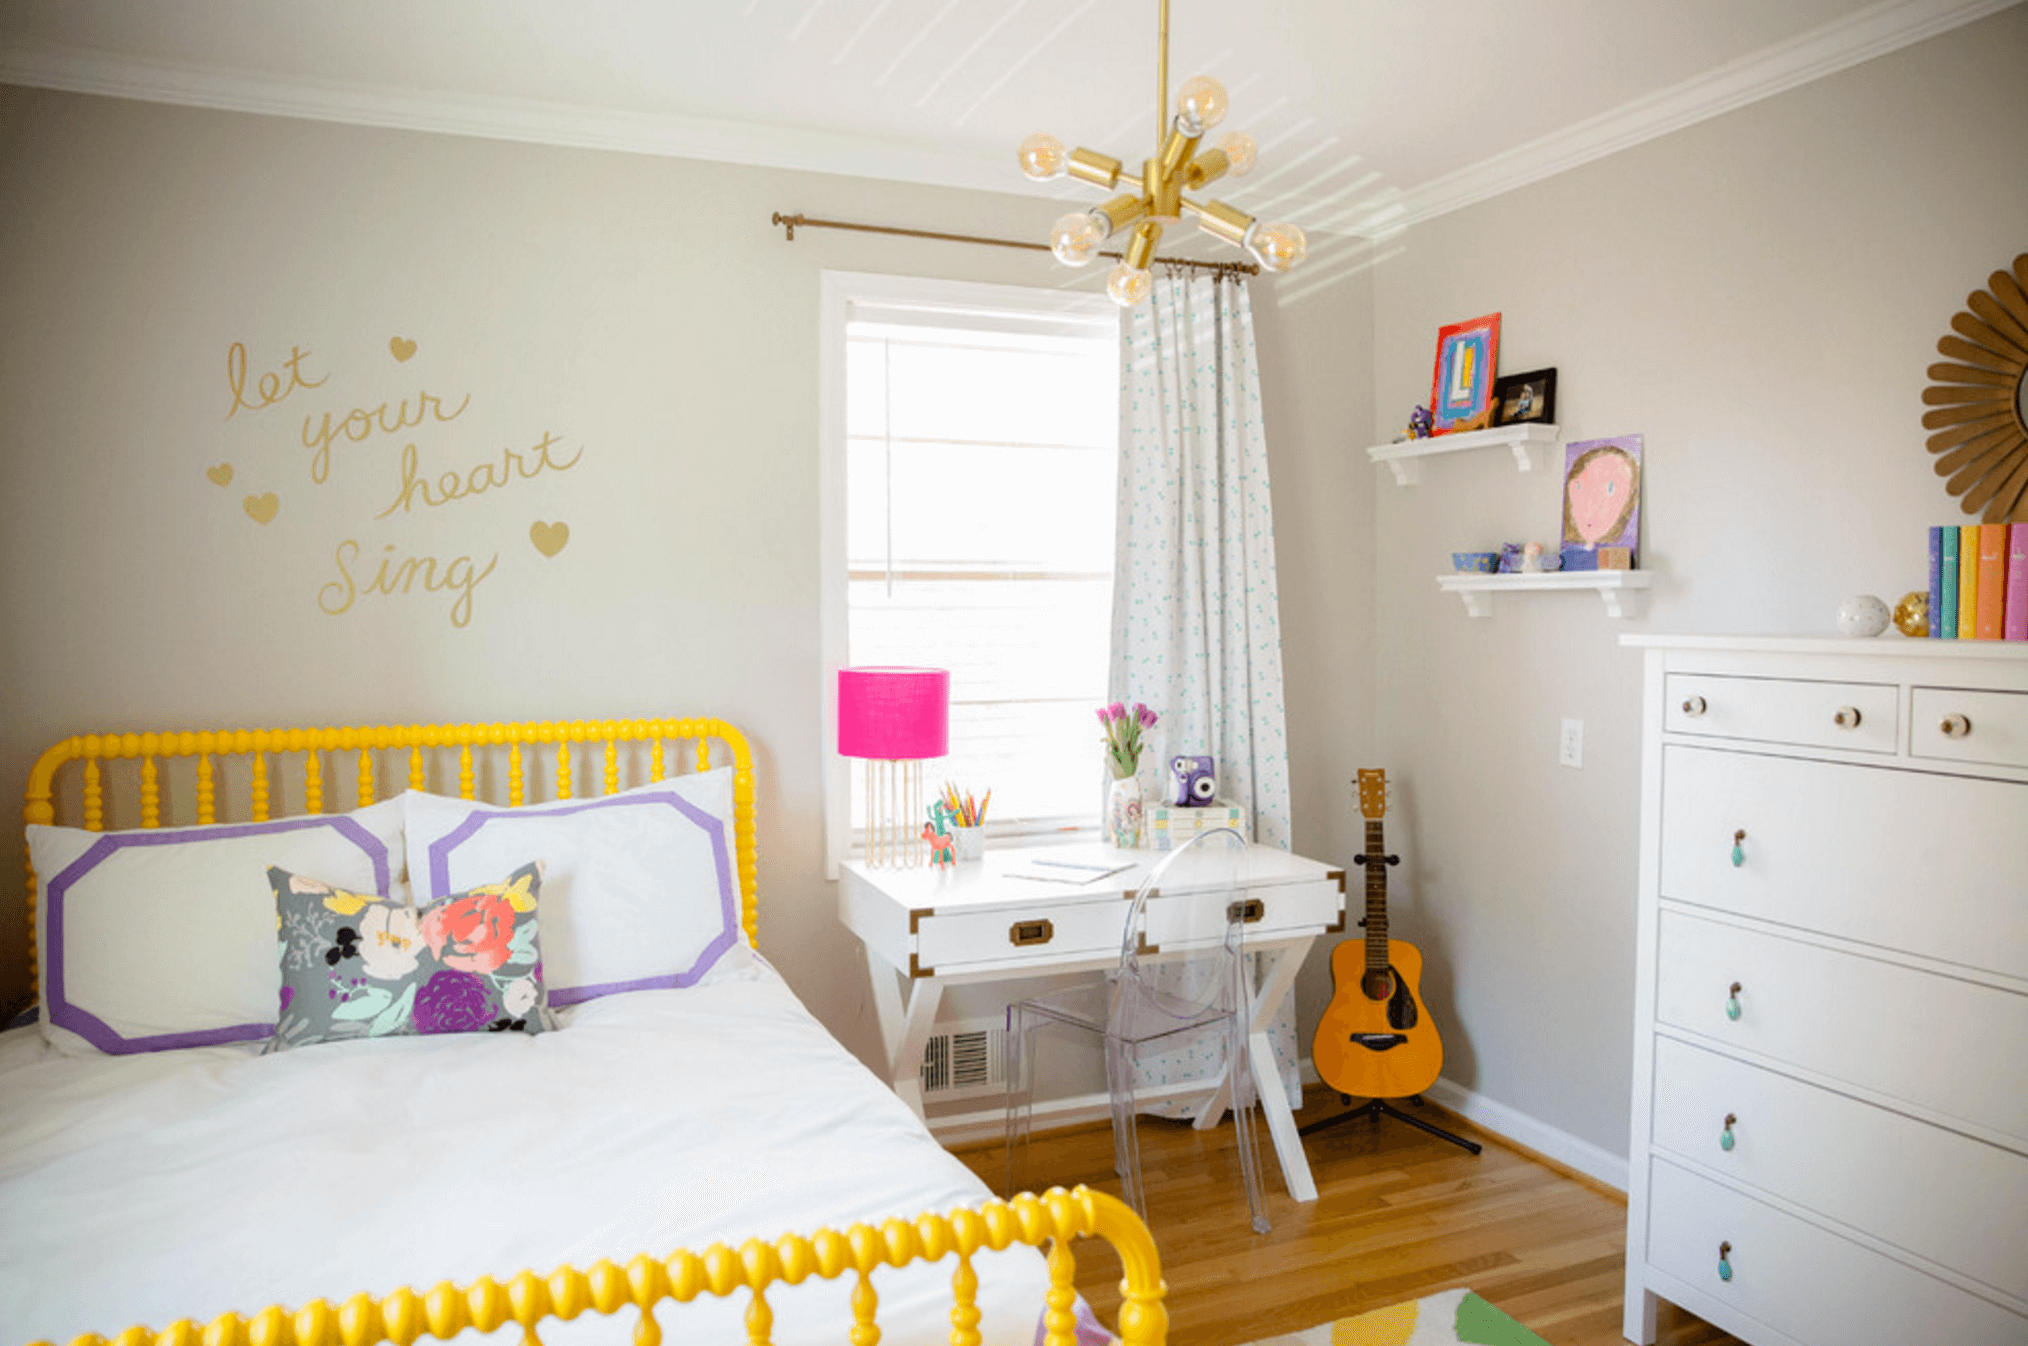 Real Estate 28 Whimsical Ways We Add Color To A Kids Room